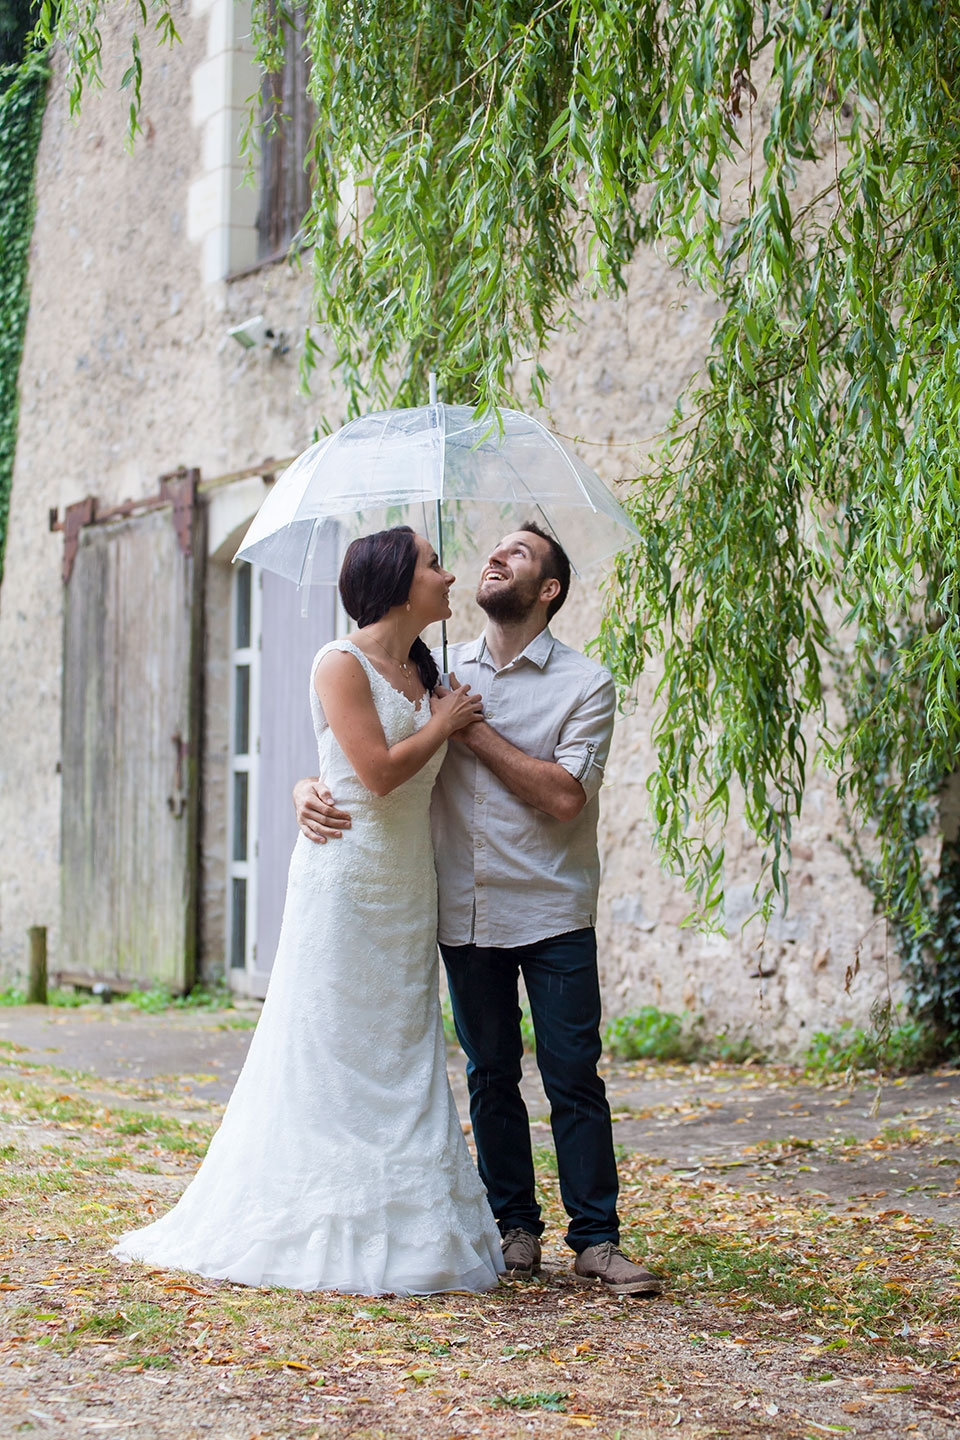 particuliers-evenements-mariage-oui-carla&jeremy-25